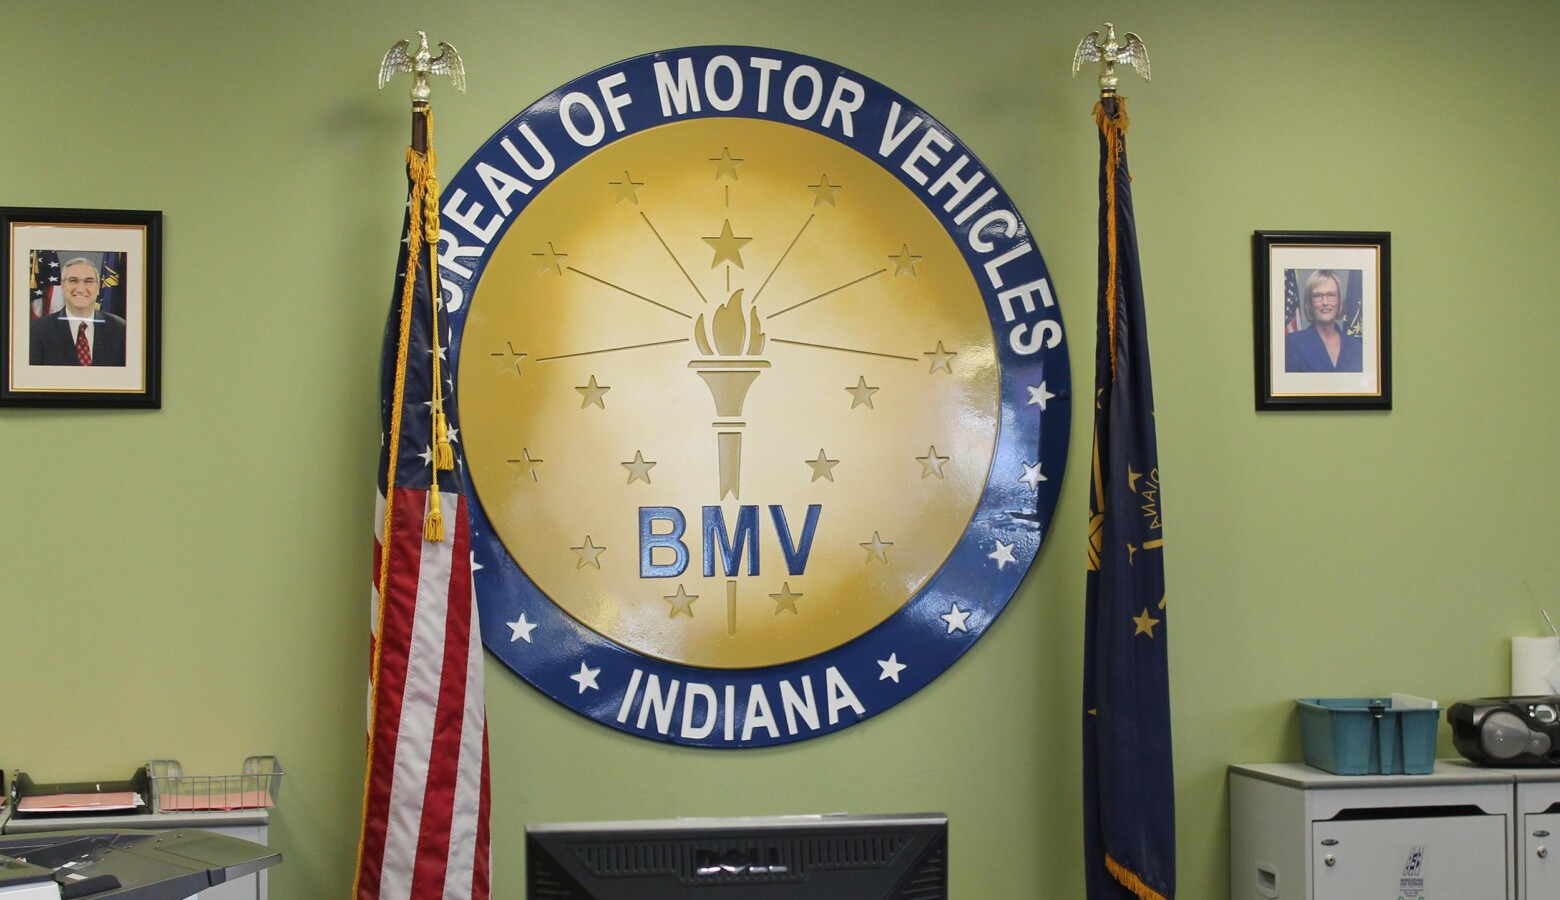 Bureau of Motor Vehicle locations across the state are starting to reopen to more in-person customers this week, with a goal to open all branches by Memorial Day. (Lauren Chapman/IPB News)